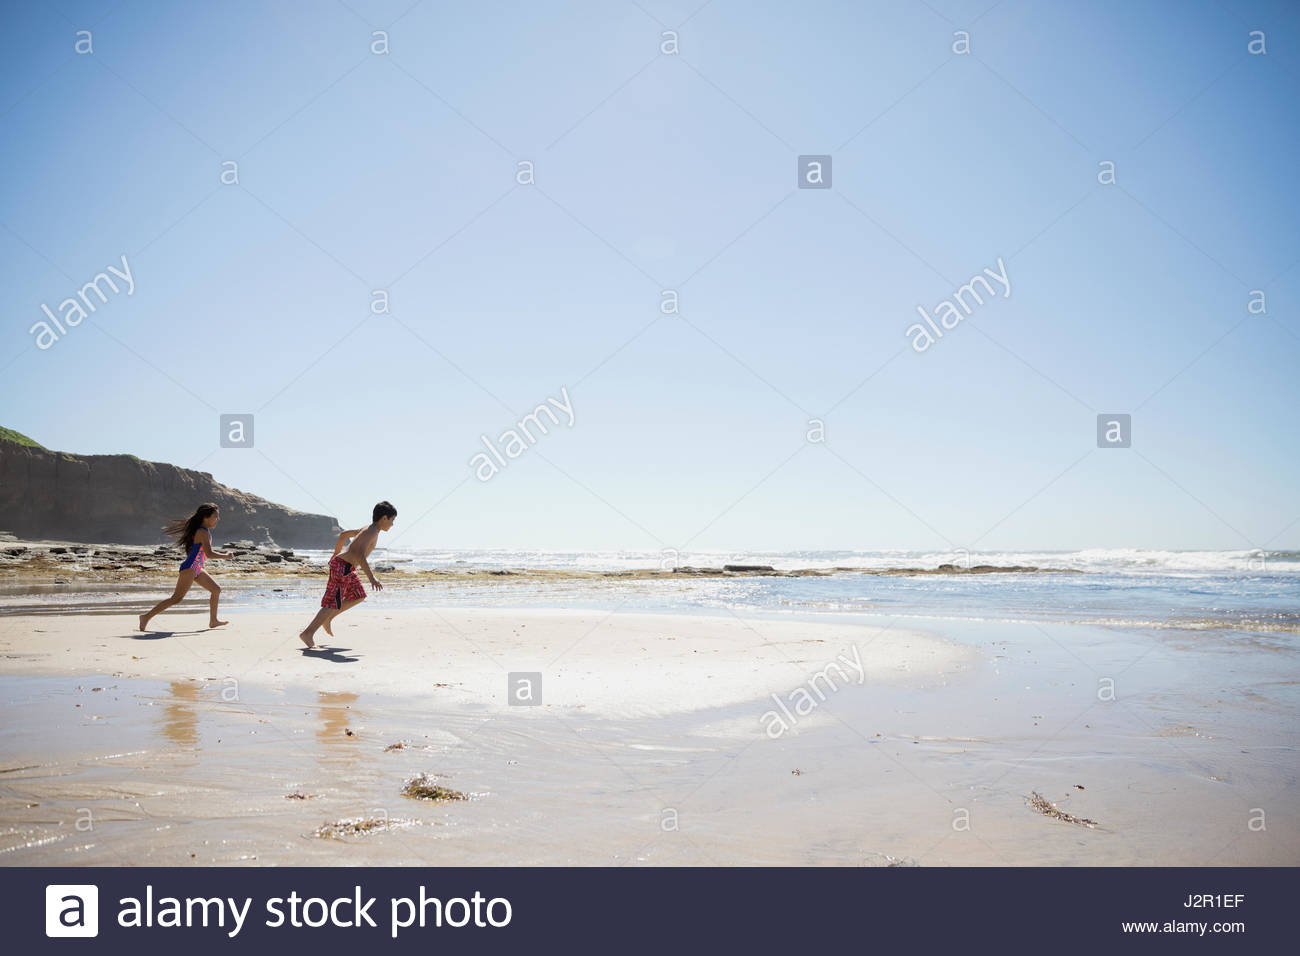 Latino brother and sister running on sunny beach - Stock Image